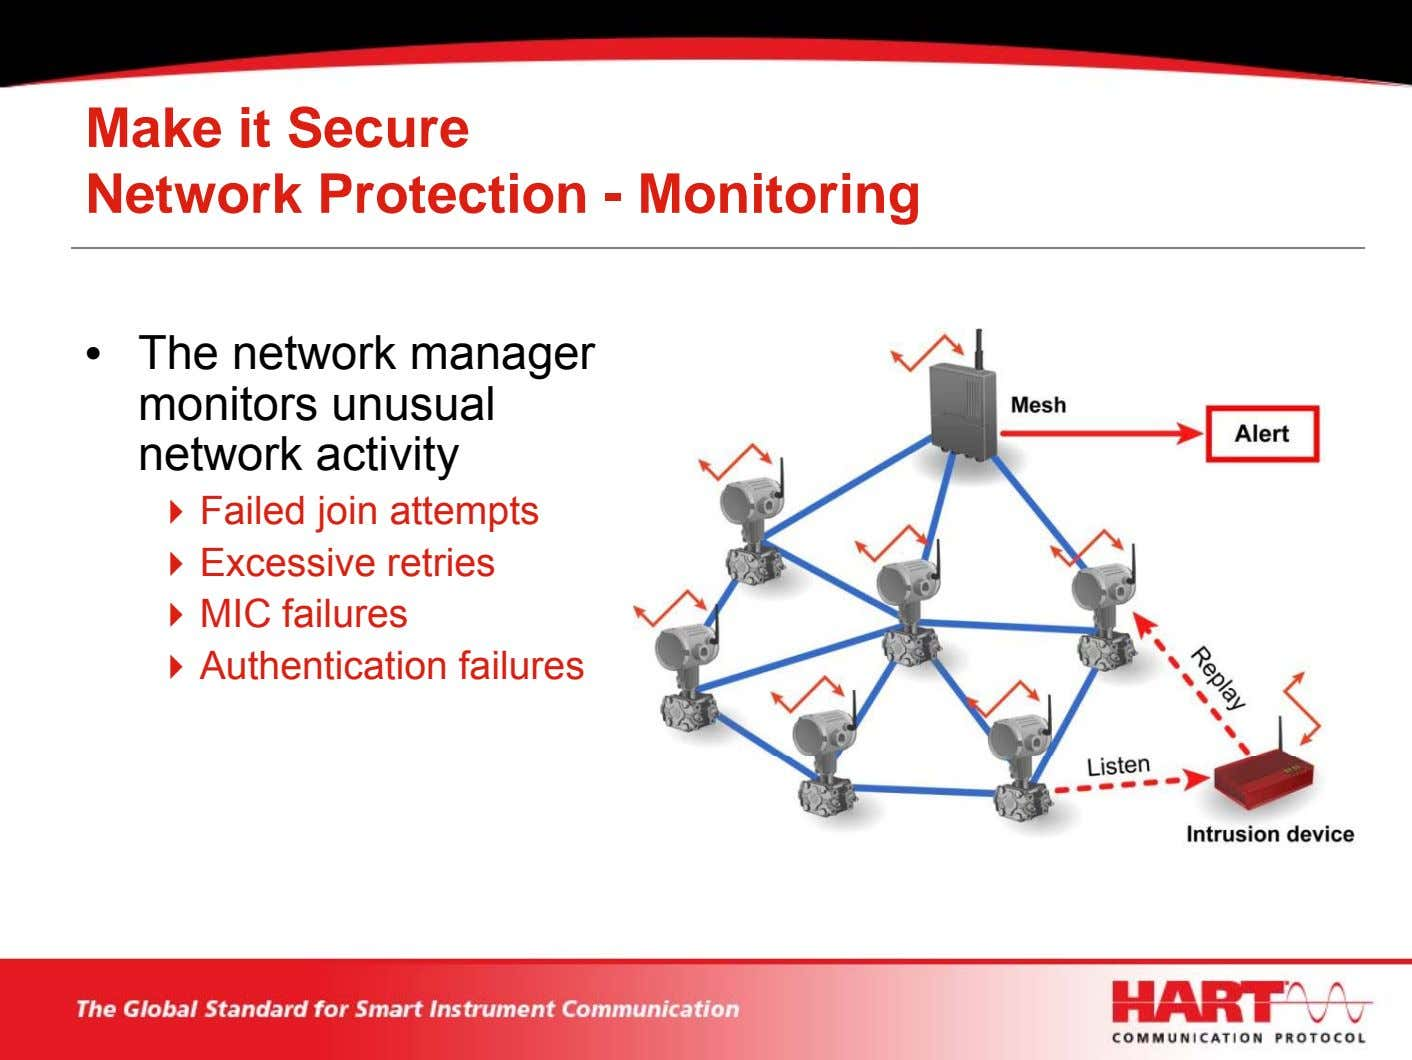 Make it Secure Network Protection - Monitoring • The network manager monitors unusual network activity